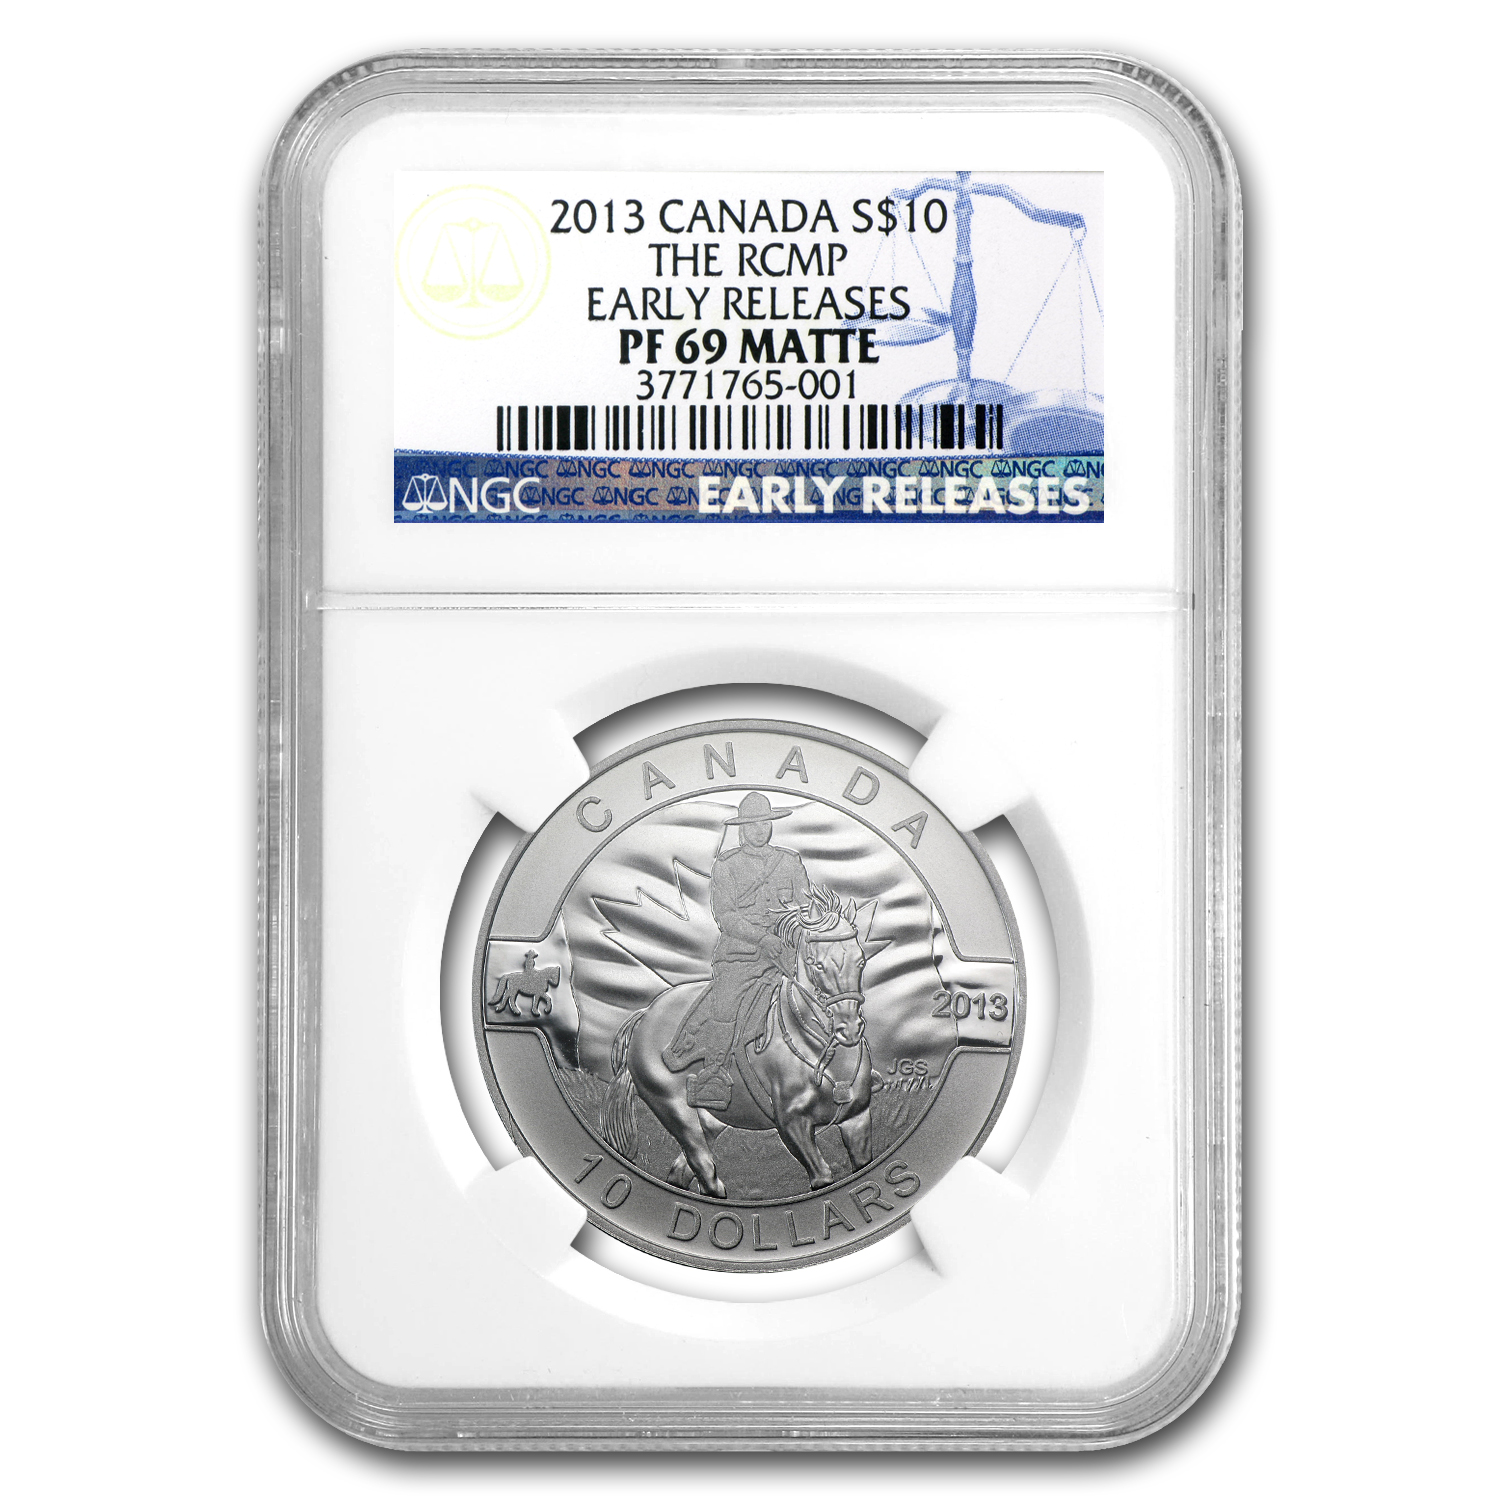 2013 1/2 oz Silver Canadian $10 RCMP PF-69 MATTE NGC